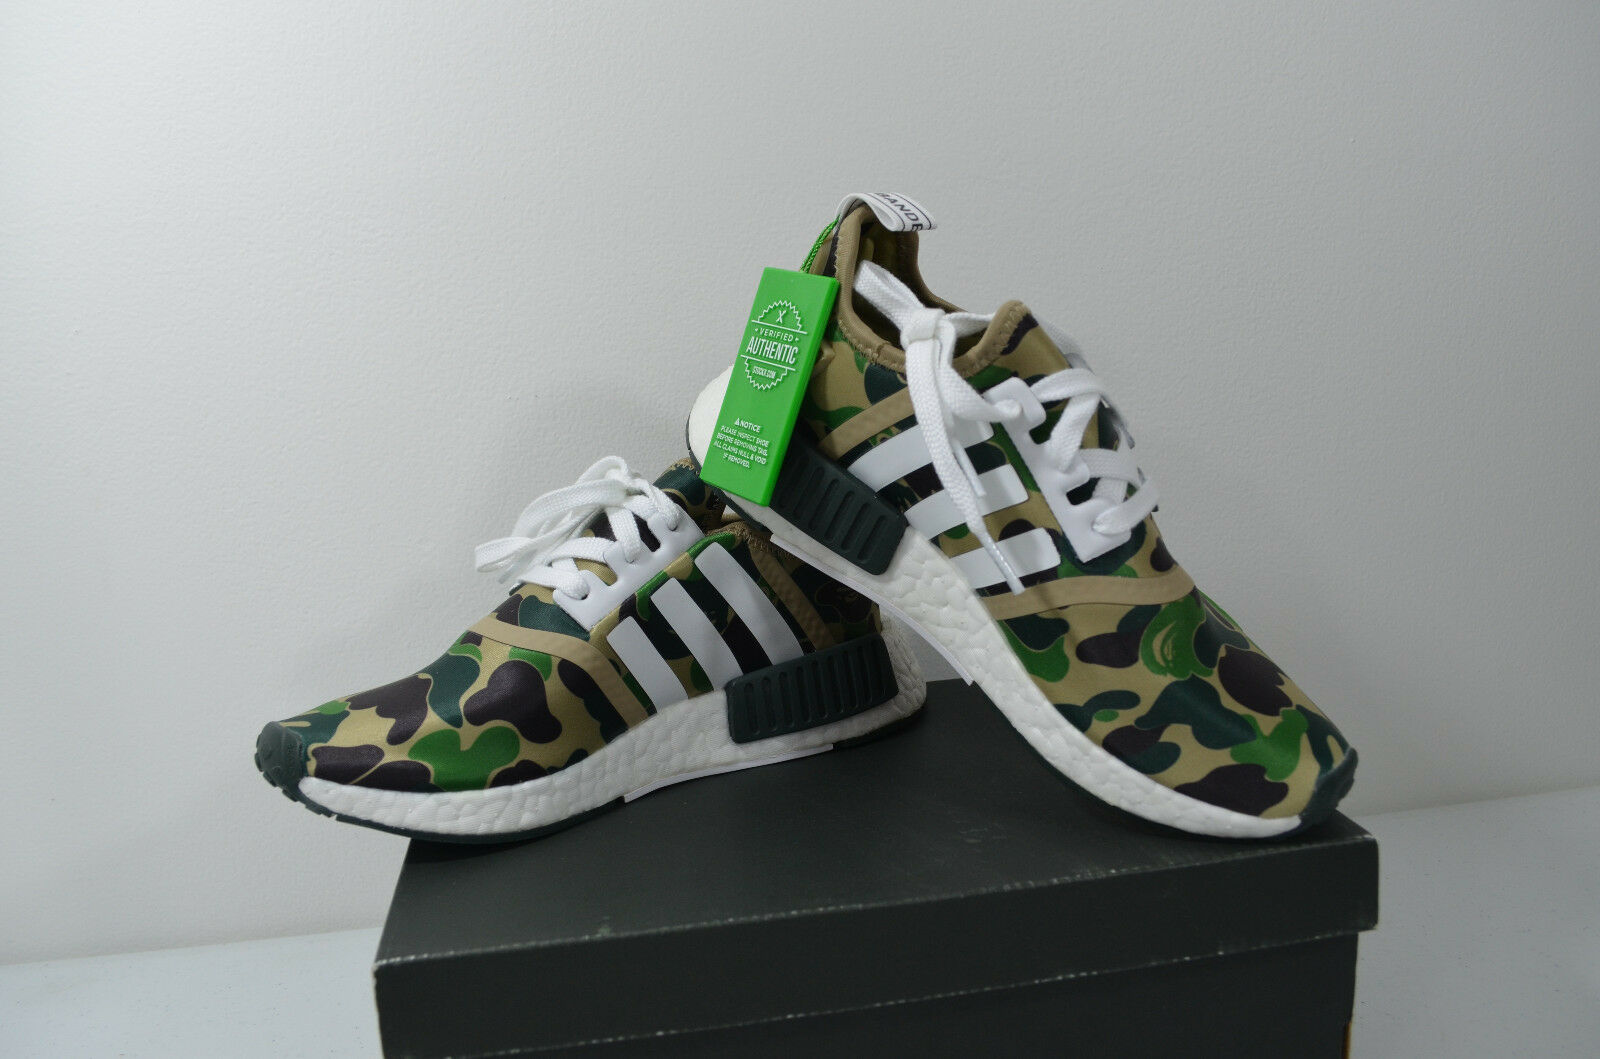 buy popular aff22 020a2 Bape R1 NMD Adidas Limited - Authenticated 5 - Size BA7326 ...